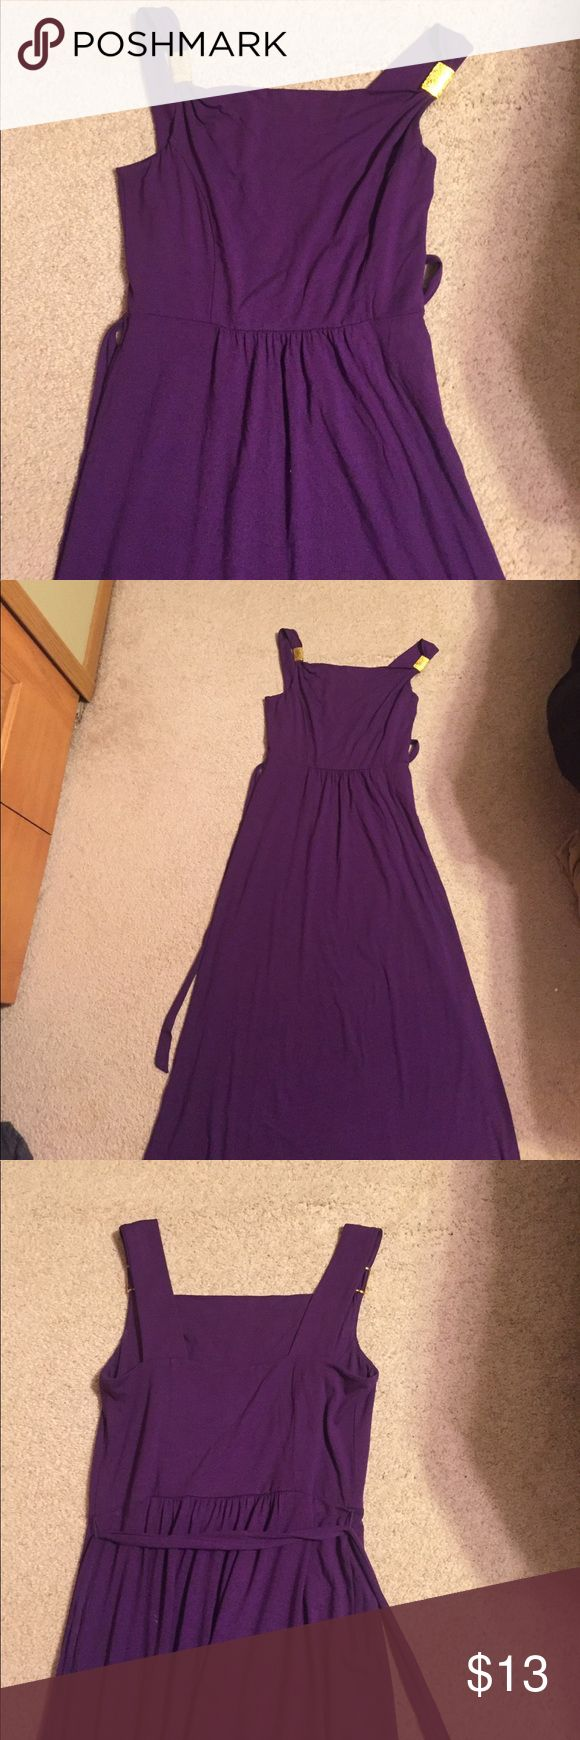 Ann Taylor small purple maxi dress with gold strap Worn only a few times Ann Taylor Factory Dresses Maxi